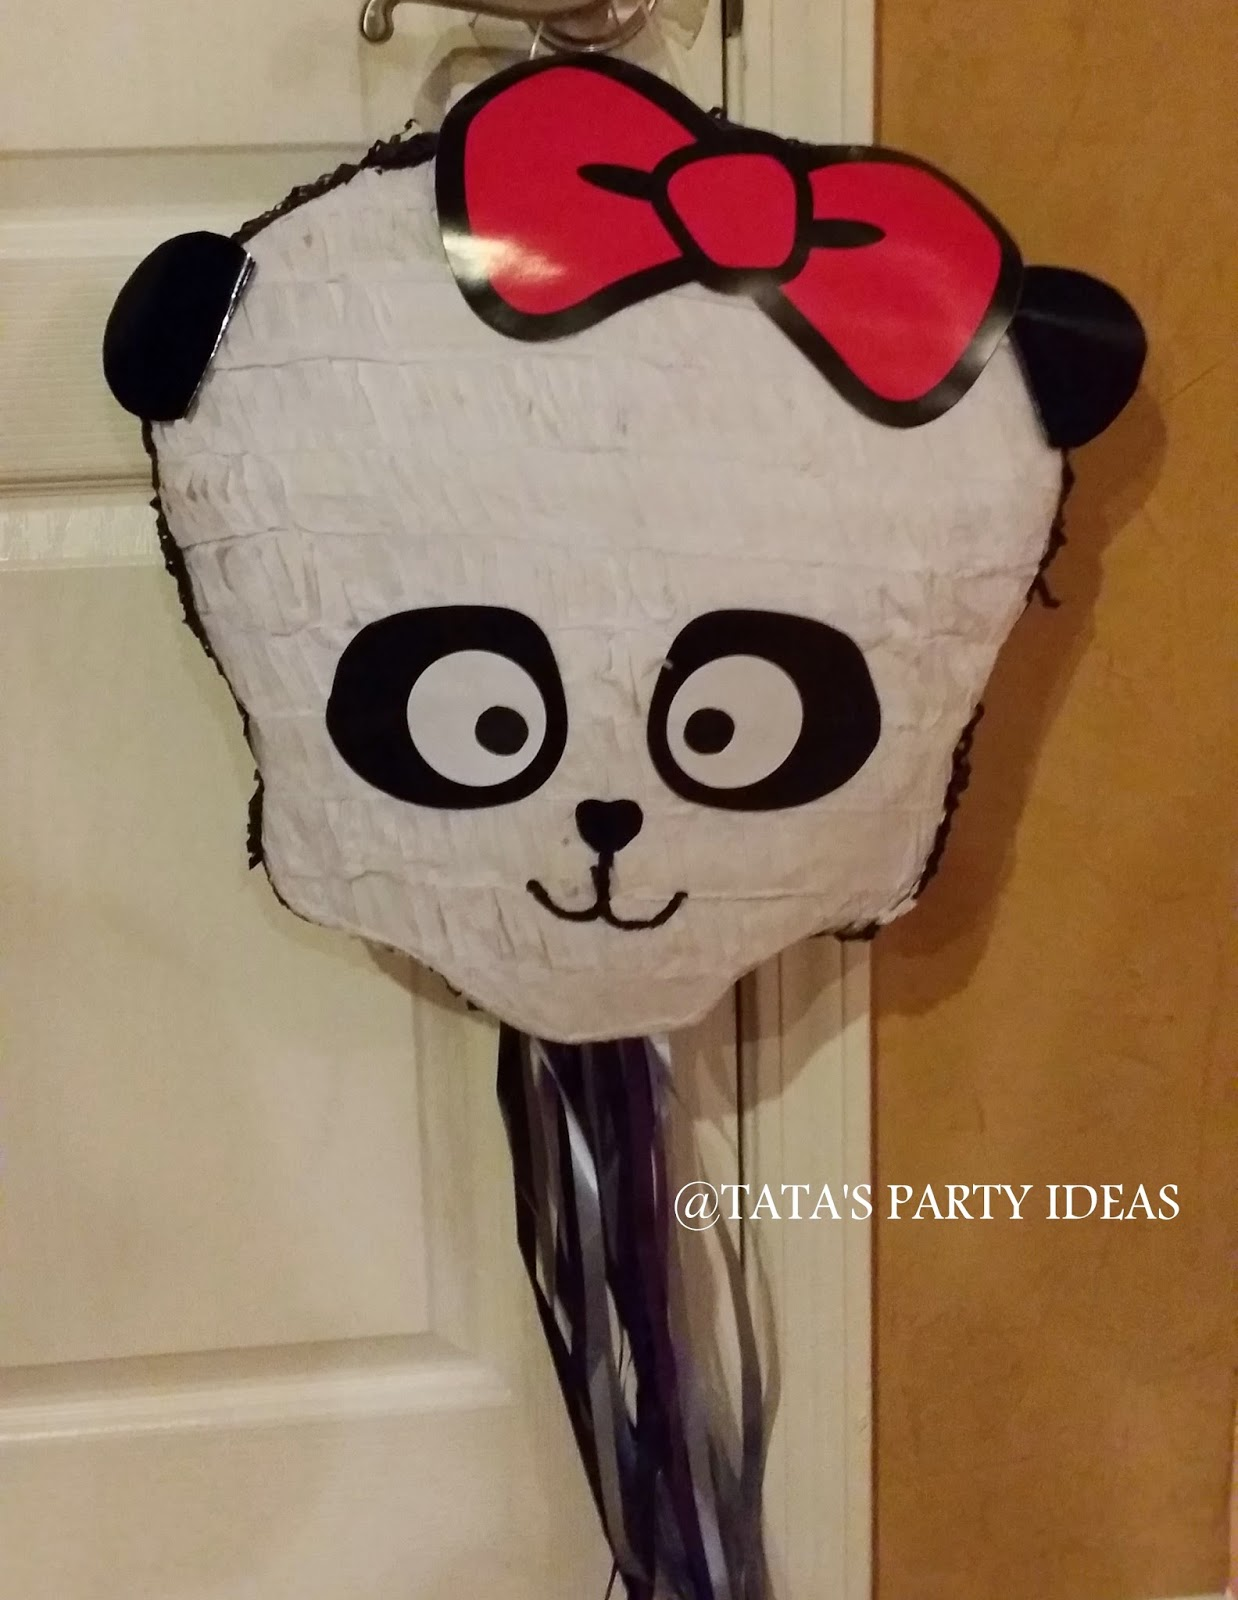 TATA'S PARTY IDEAS